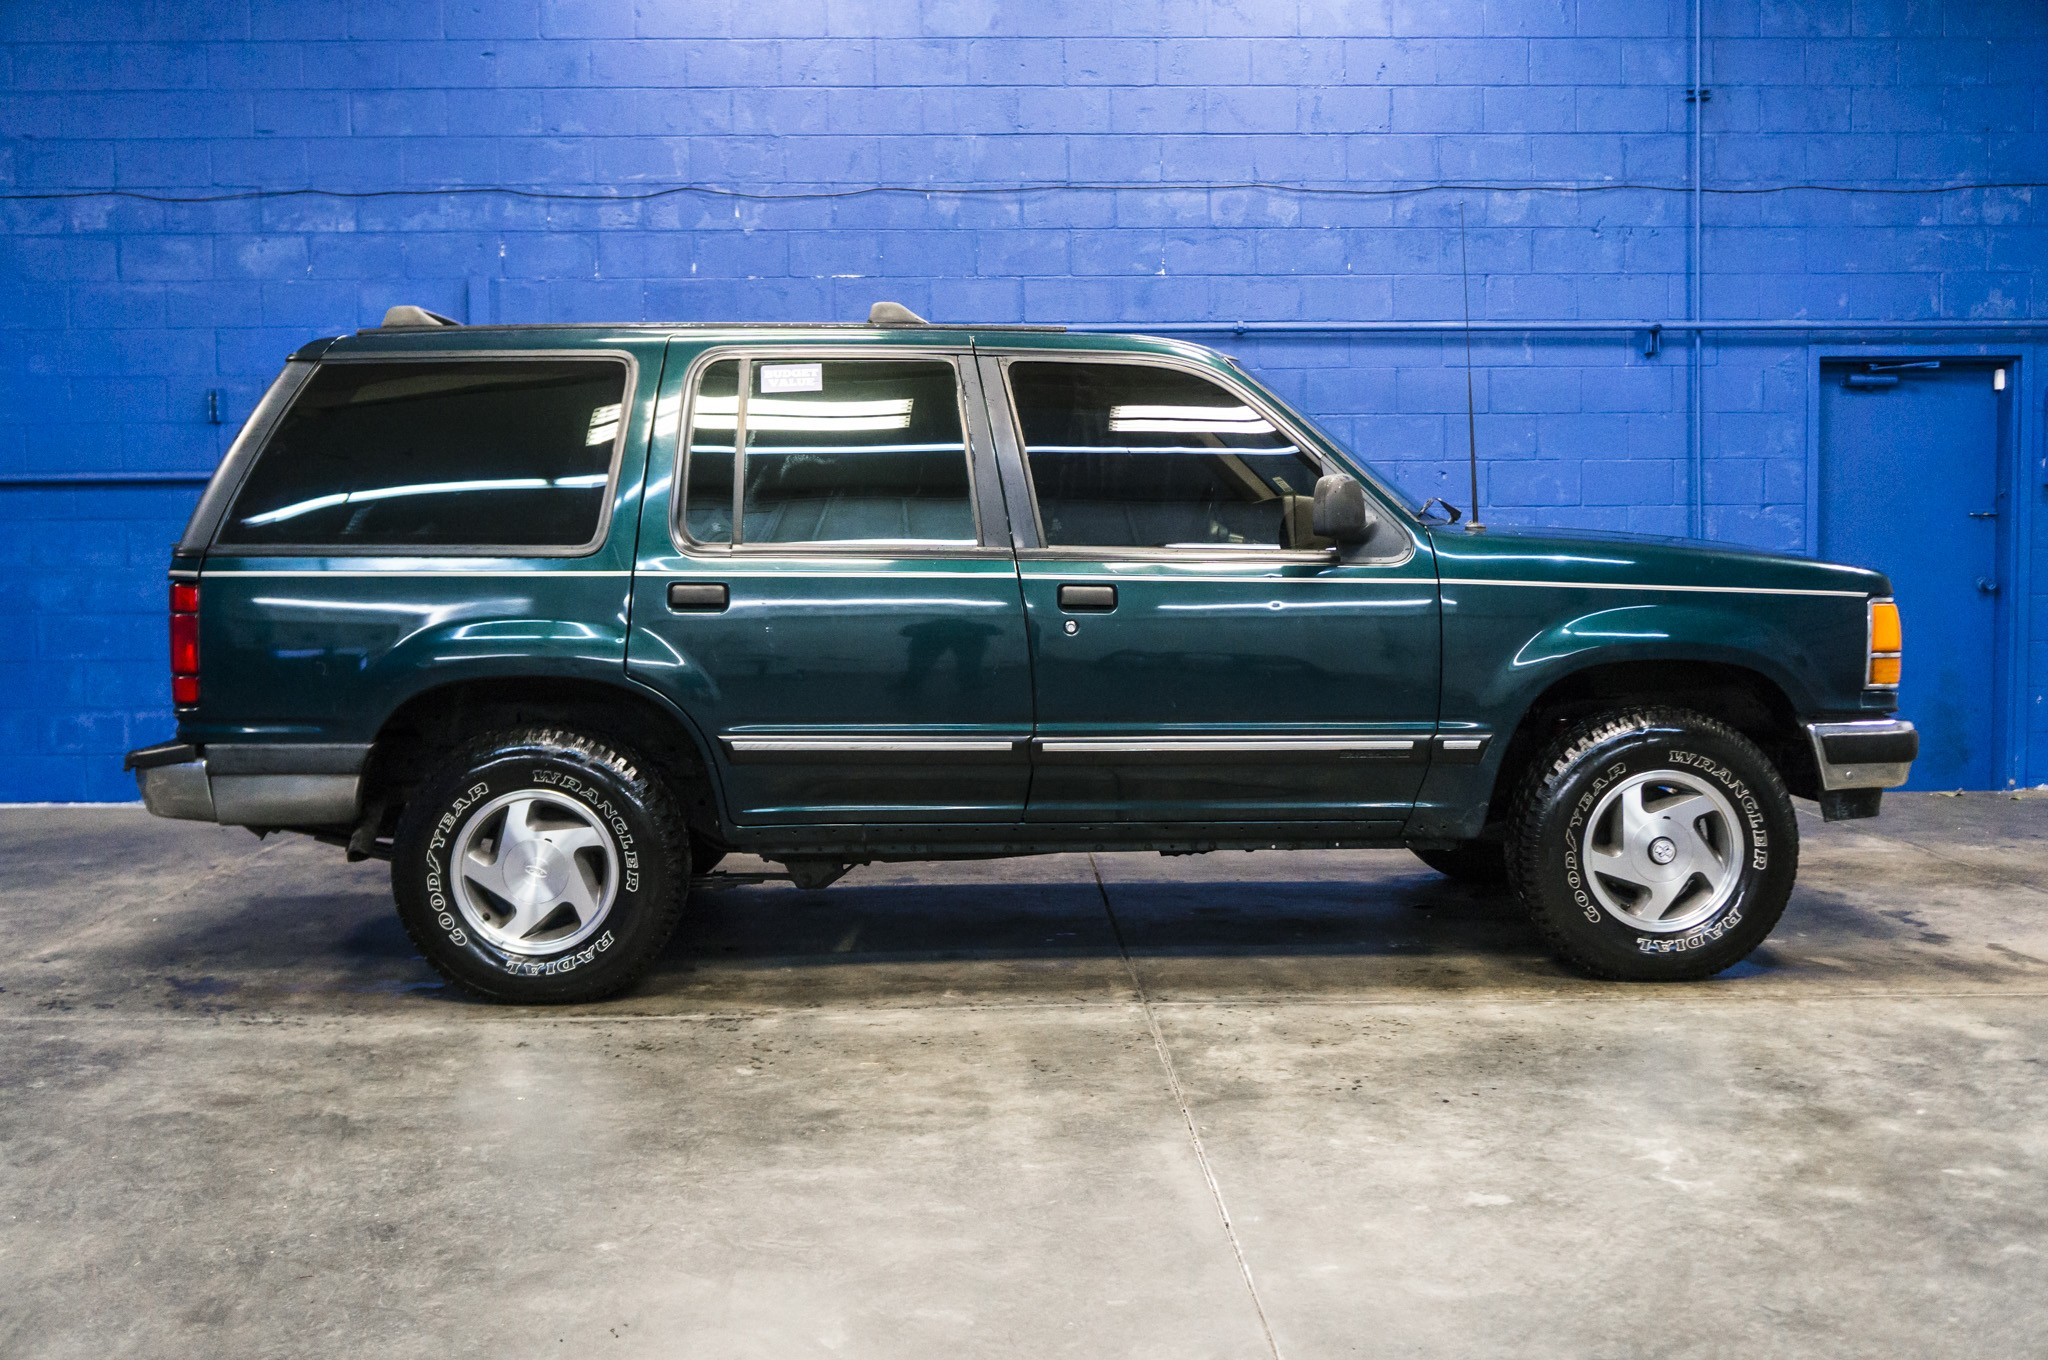 Used 1993 Ford Explorer 4x4 Suv For Sale 32432b